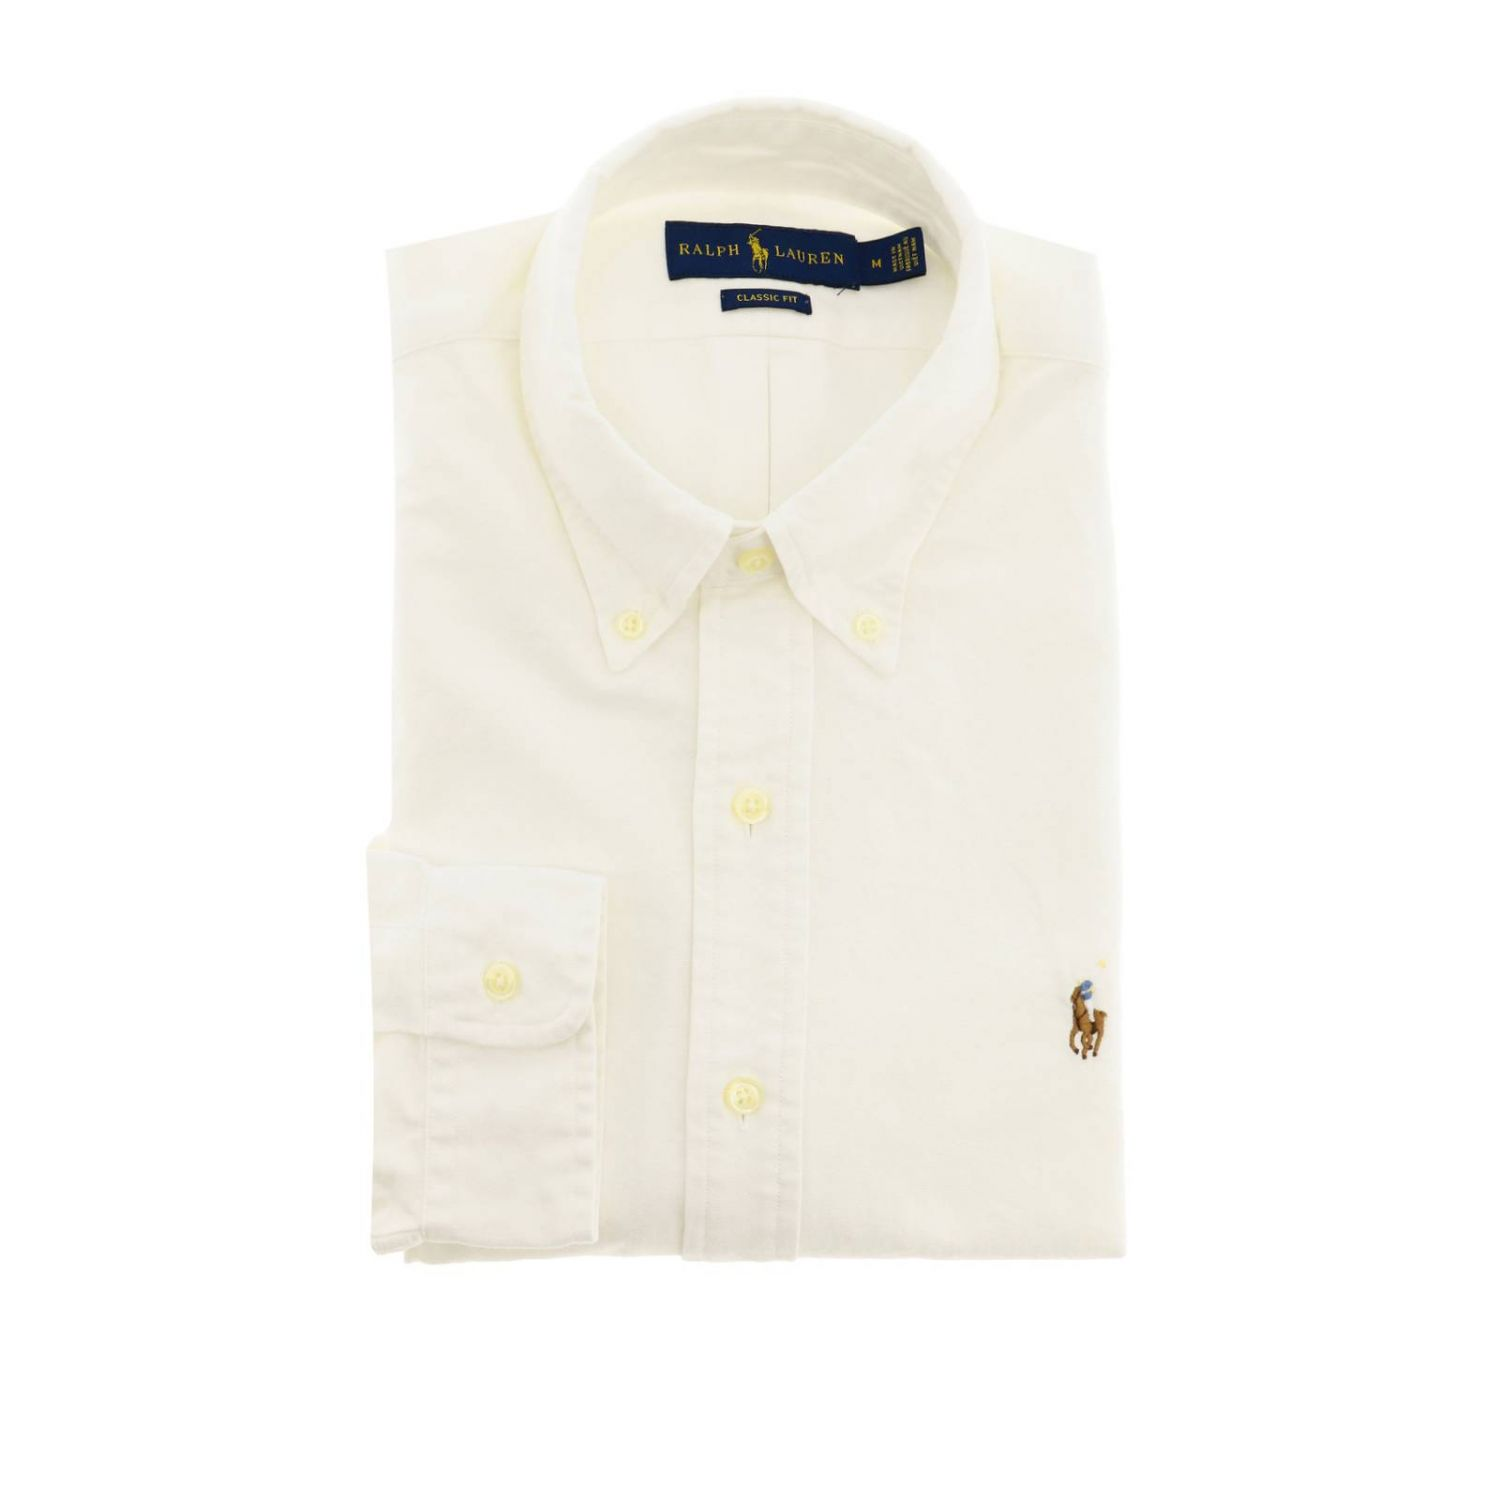 Custom fit Oxford shirt with button down collar and Polo Ralph Lauren logo white 1